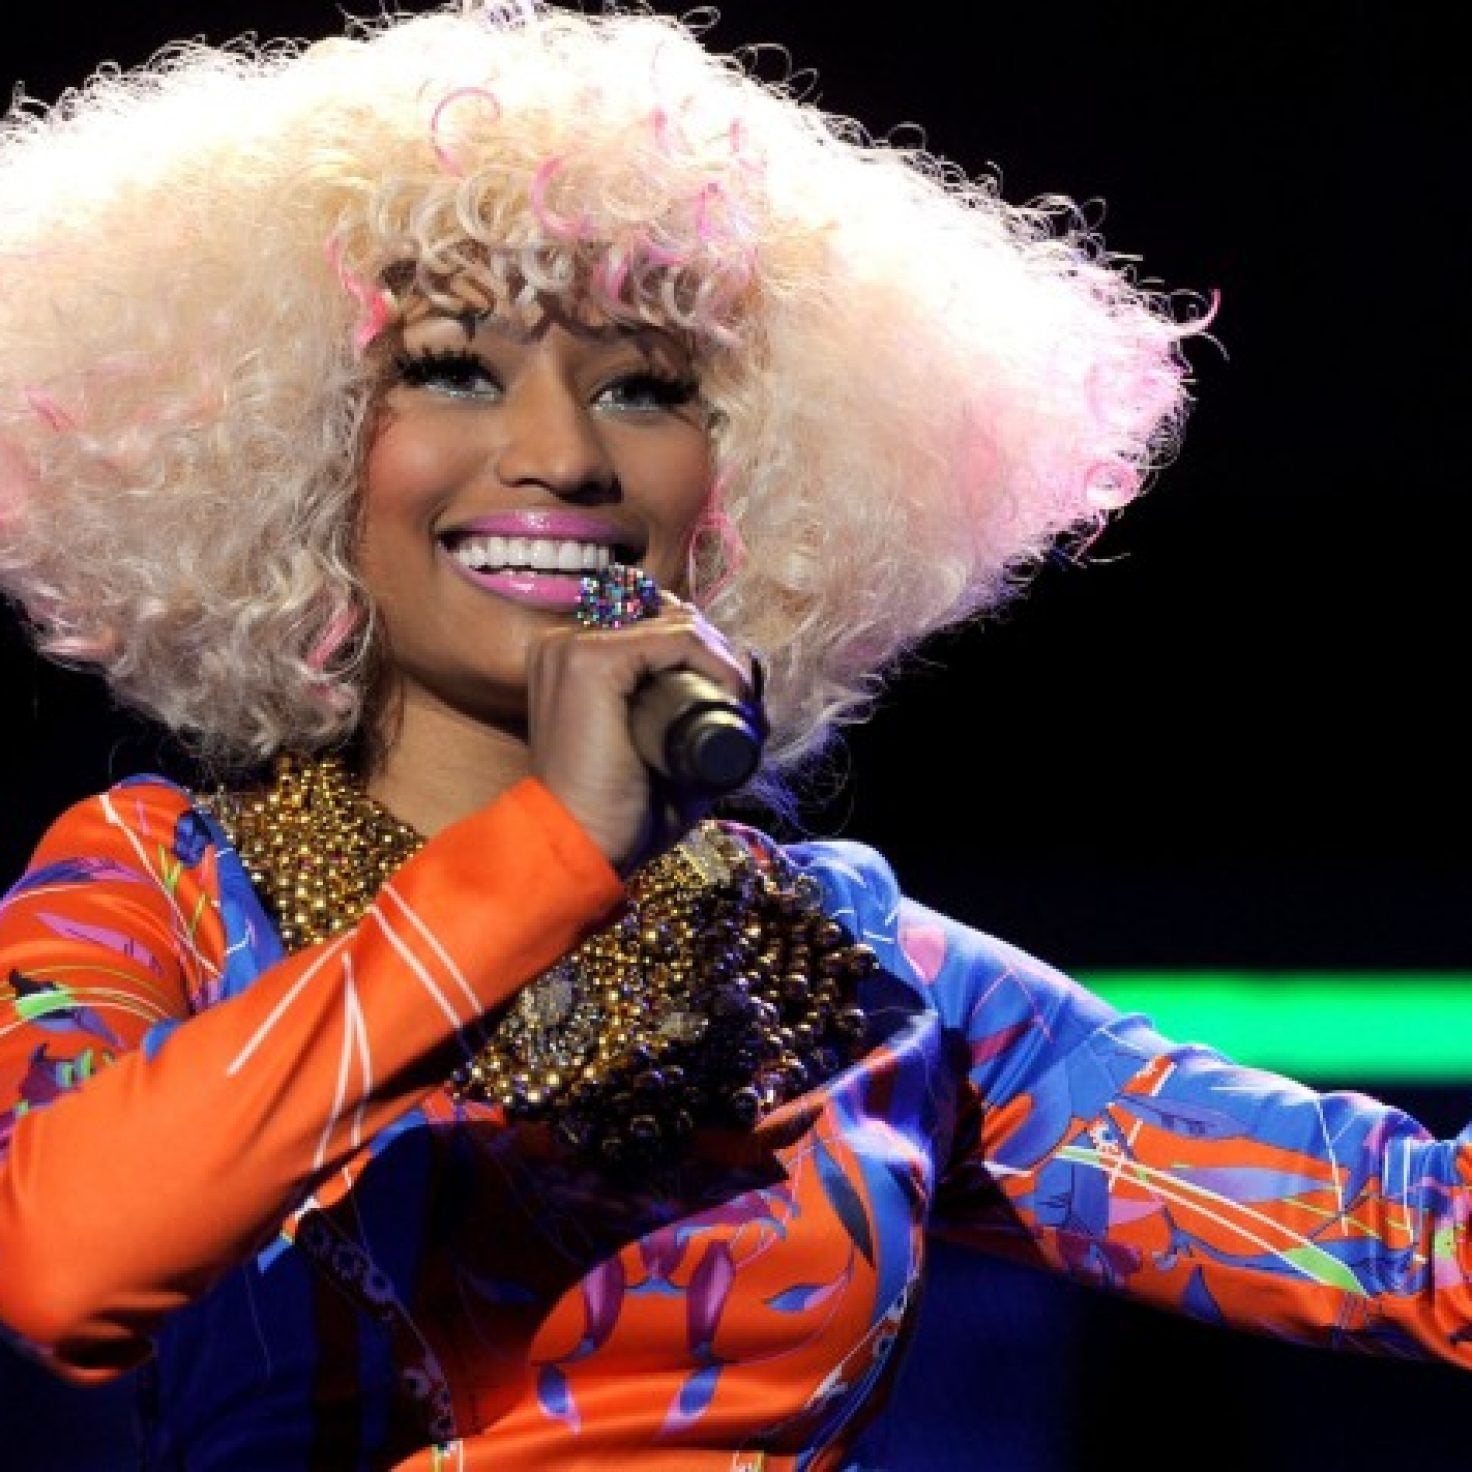 Nicki Minaj Has Always Been A Hair And Makeup MVP And A 'Drag Race' Inspiration